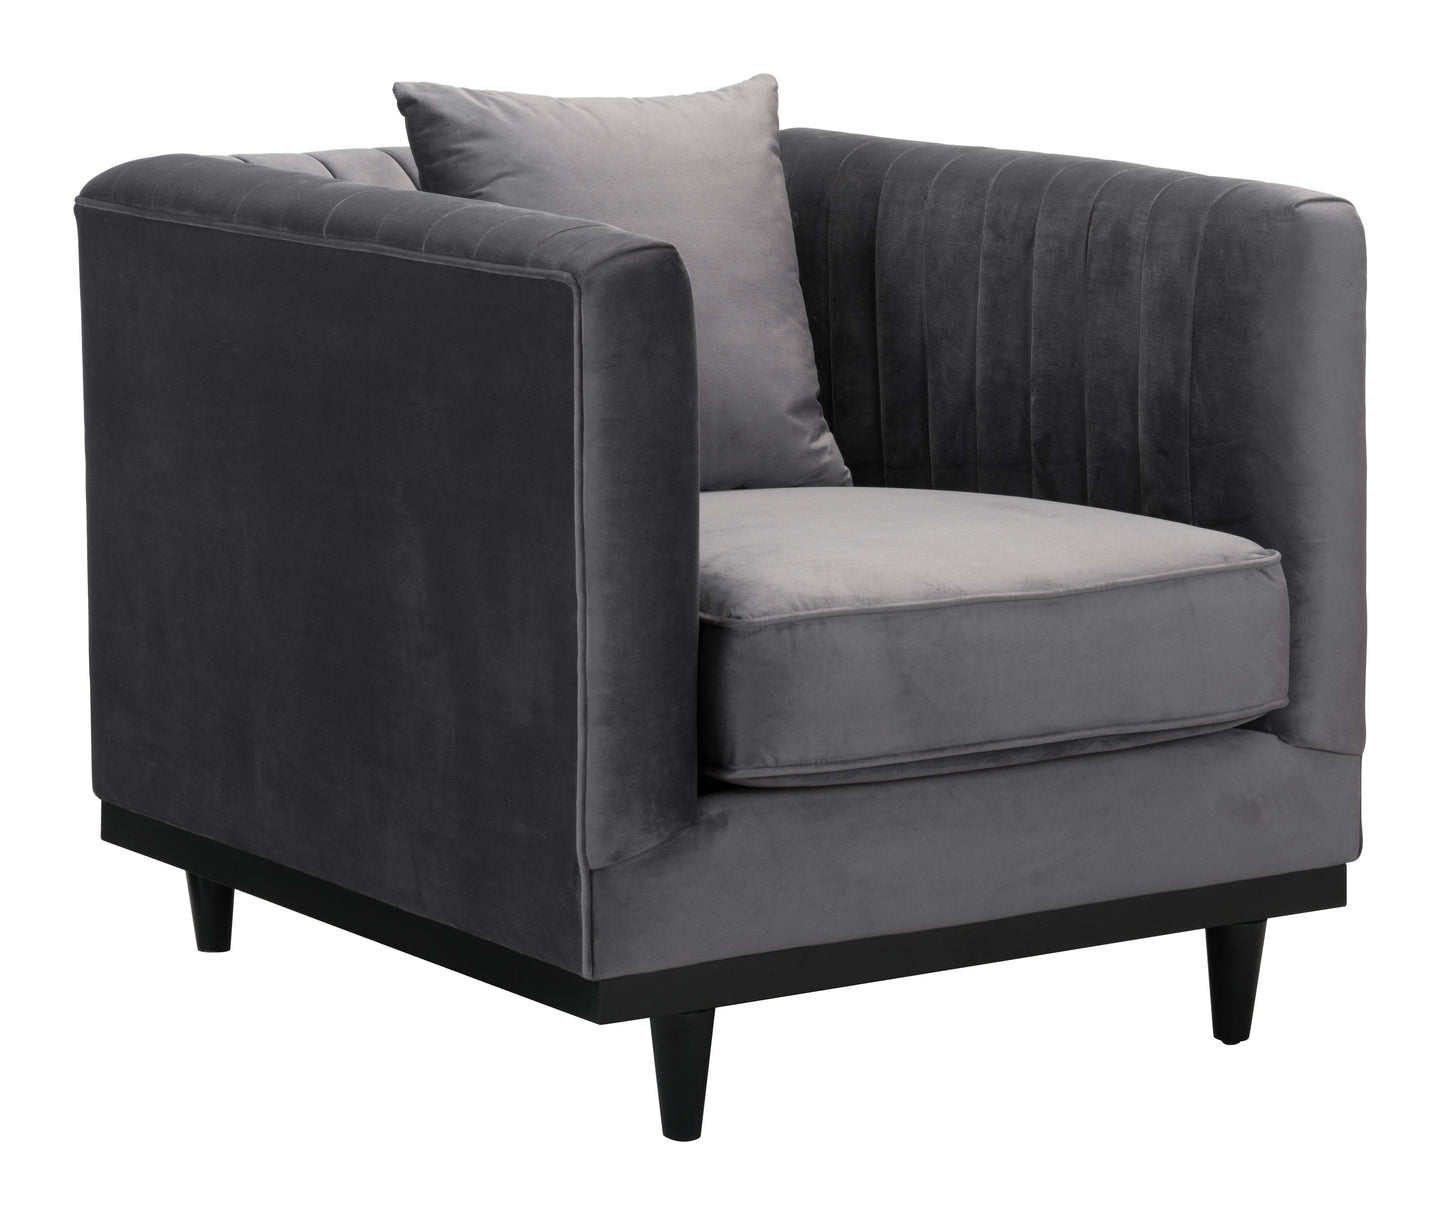 Garland Arm Chair Gray Velvet - Living